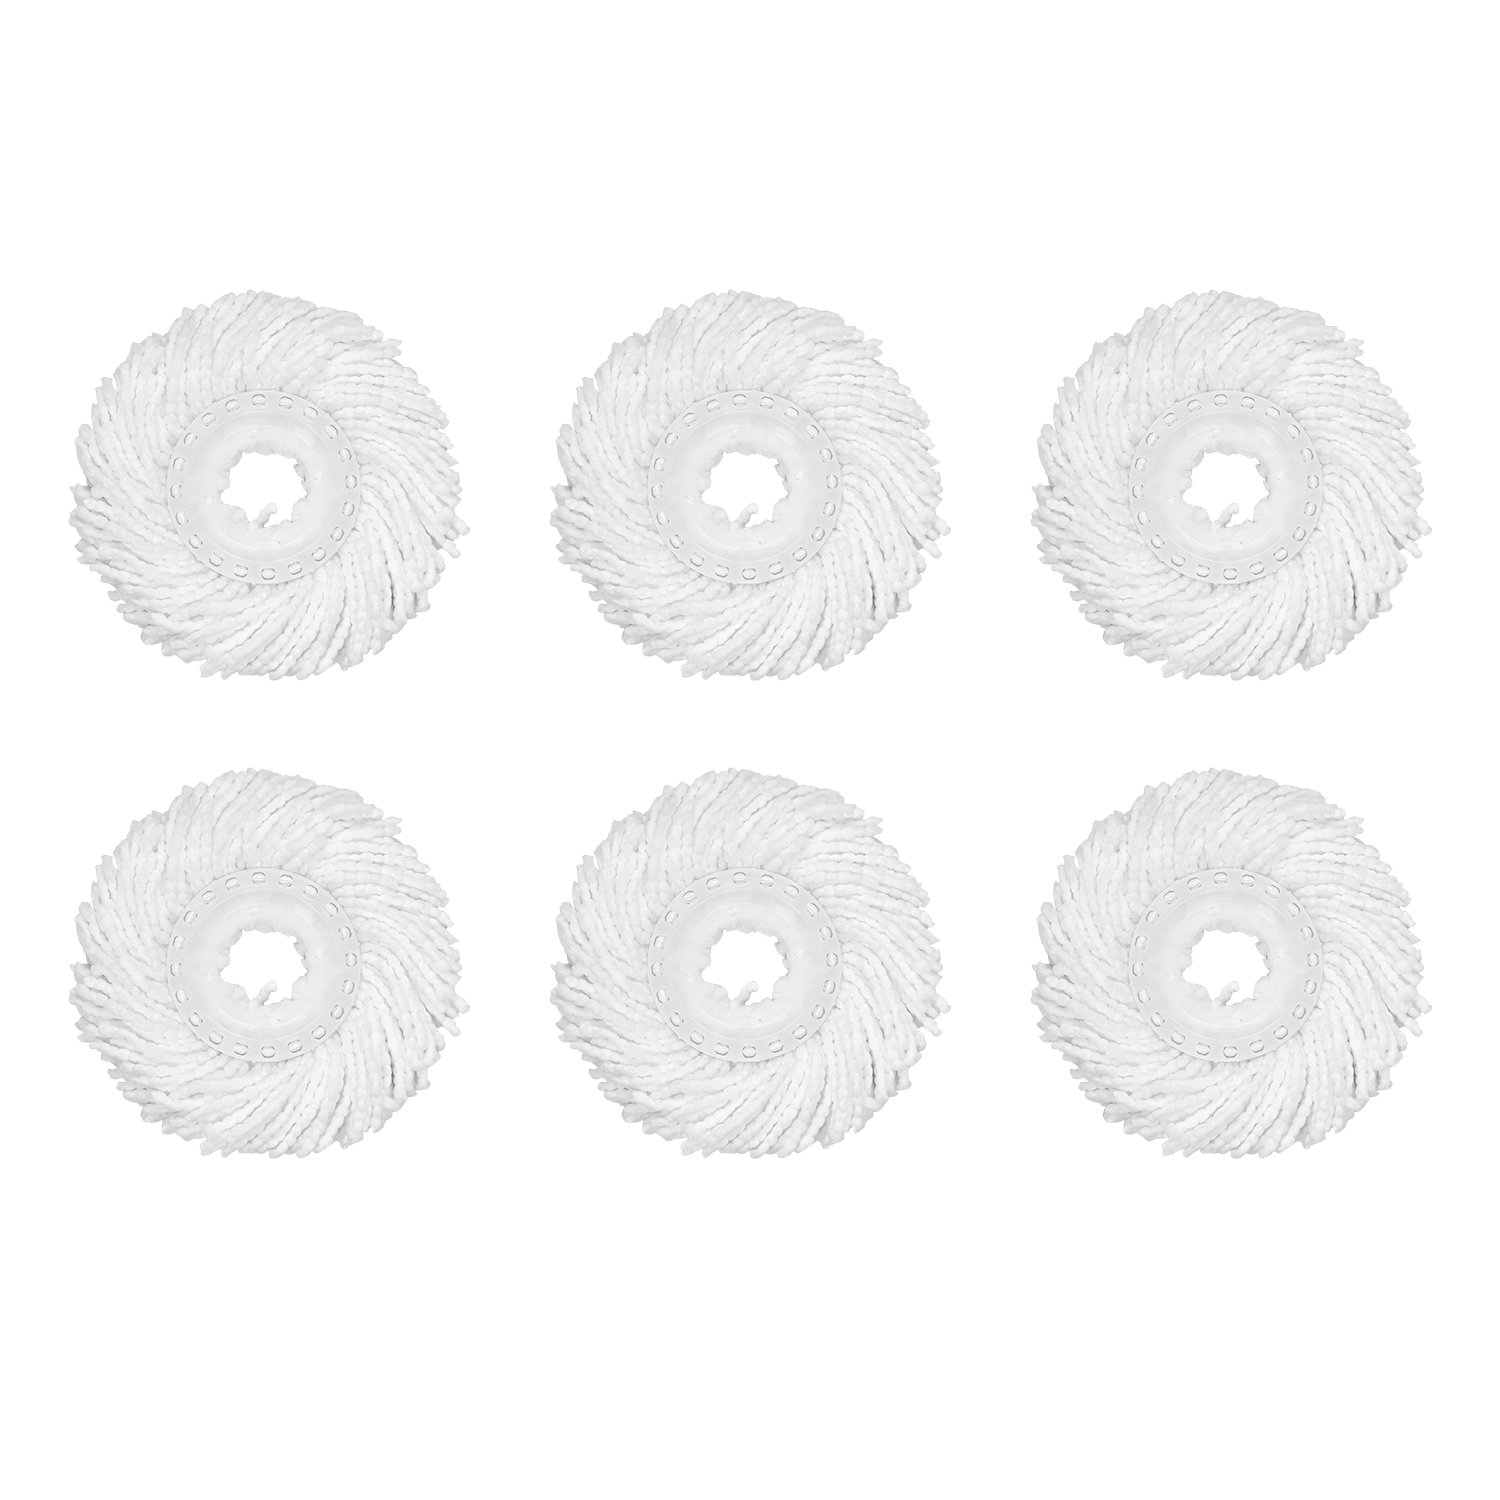 HAPINNEX Microfiber Floor Mop Heads - 6 Pack Refills - Compatible With 360° Spin Cleaning Mops (with diameter between 6.1'' to 6.5'')